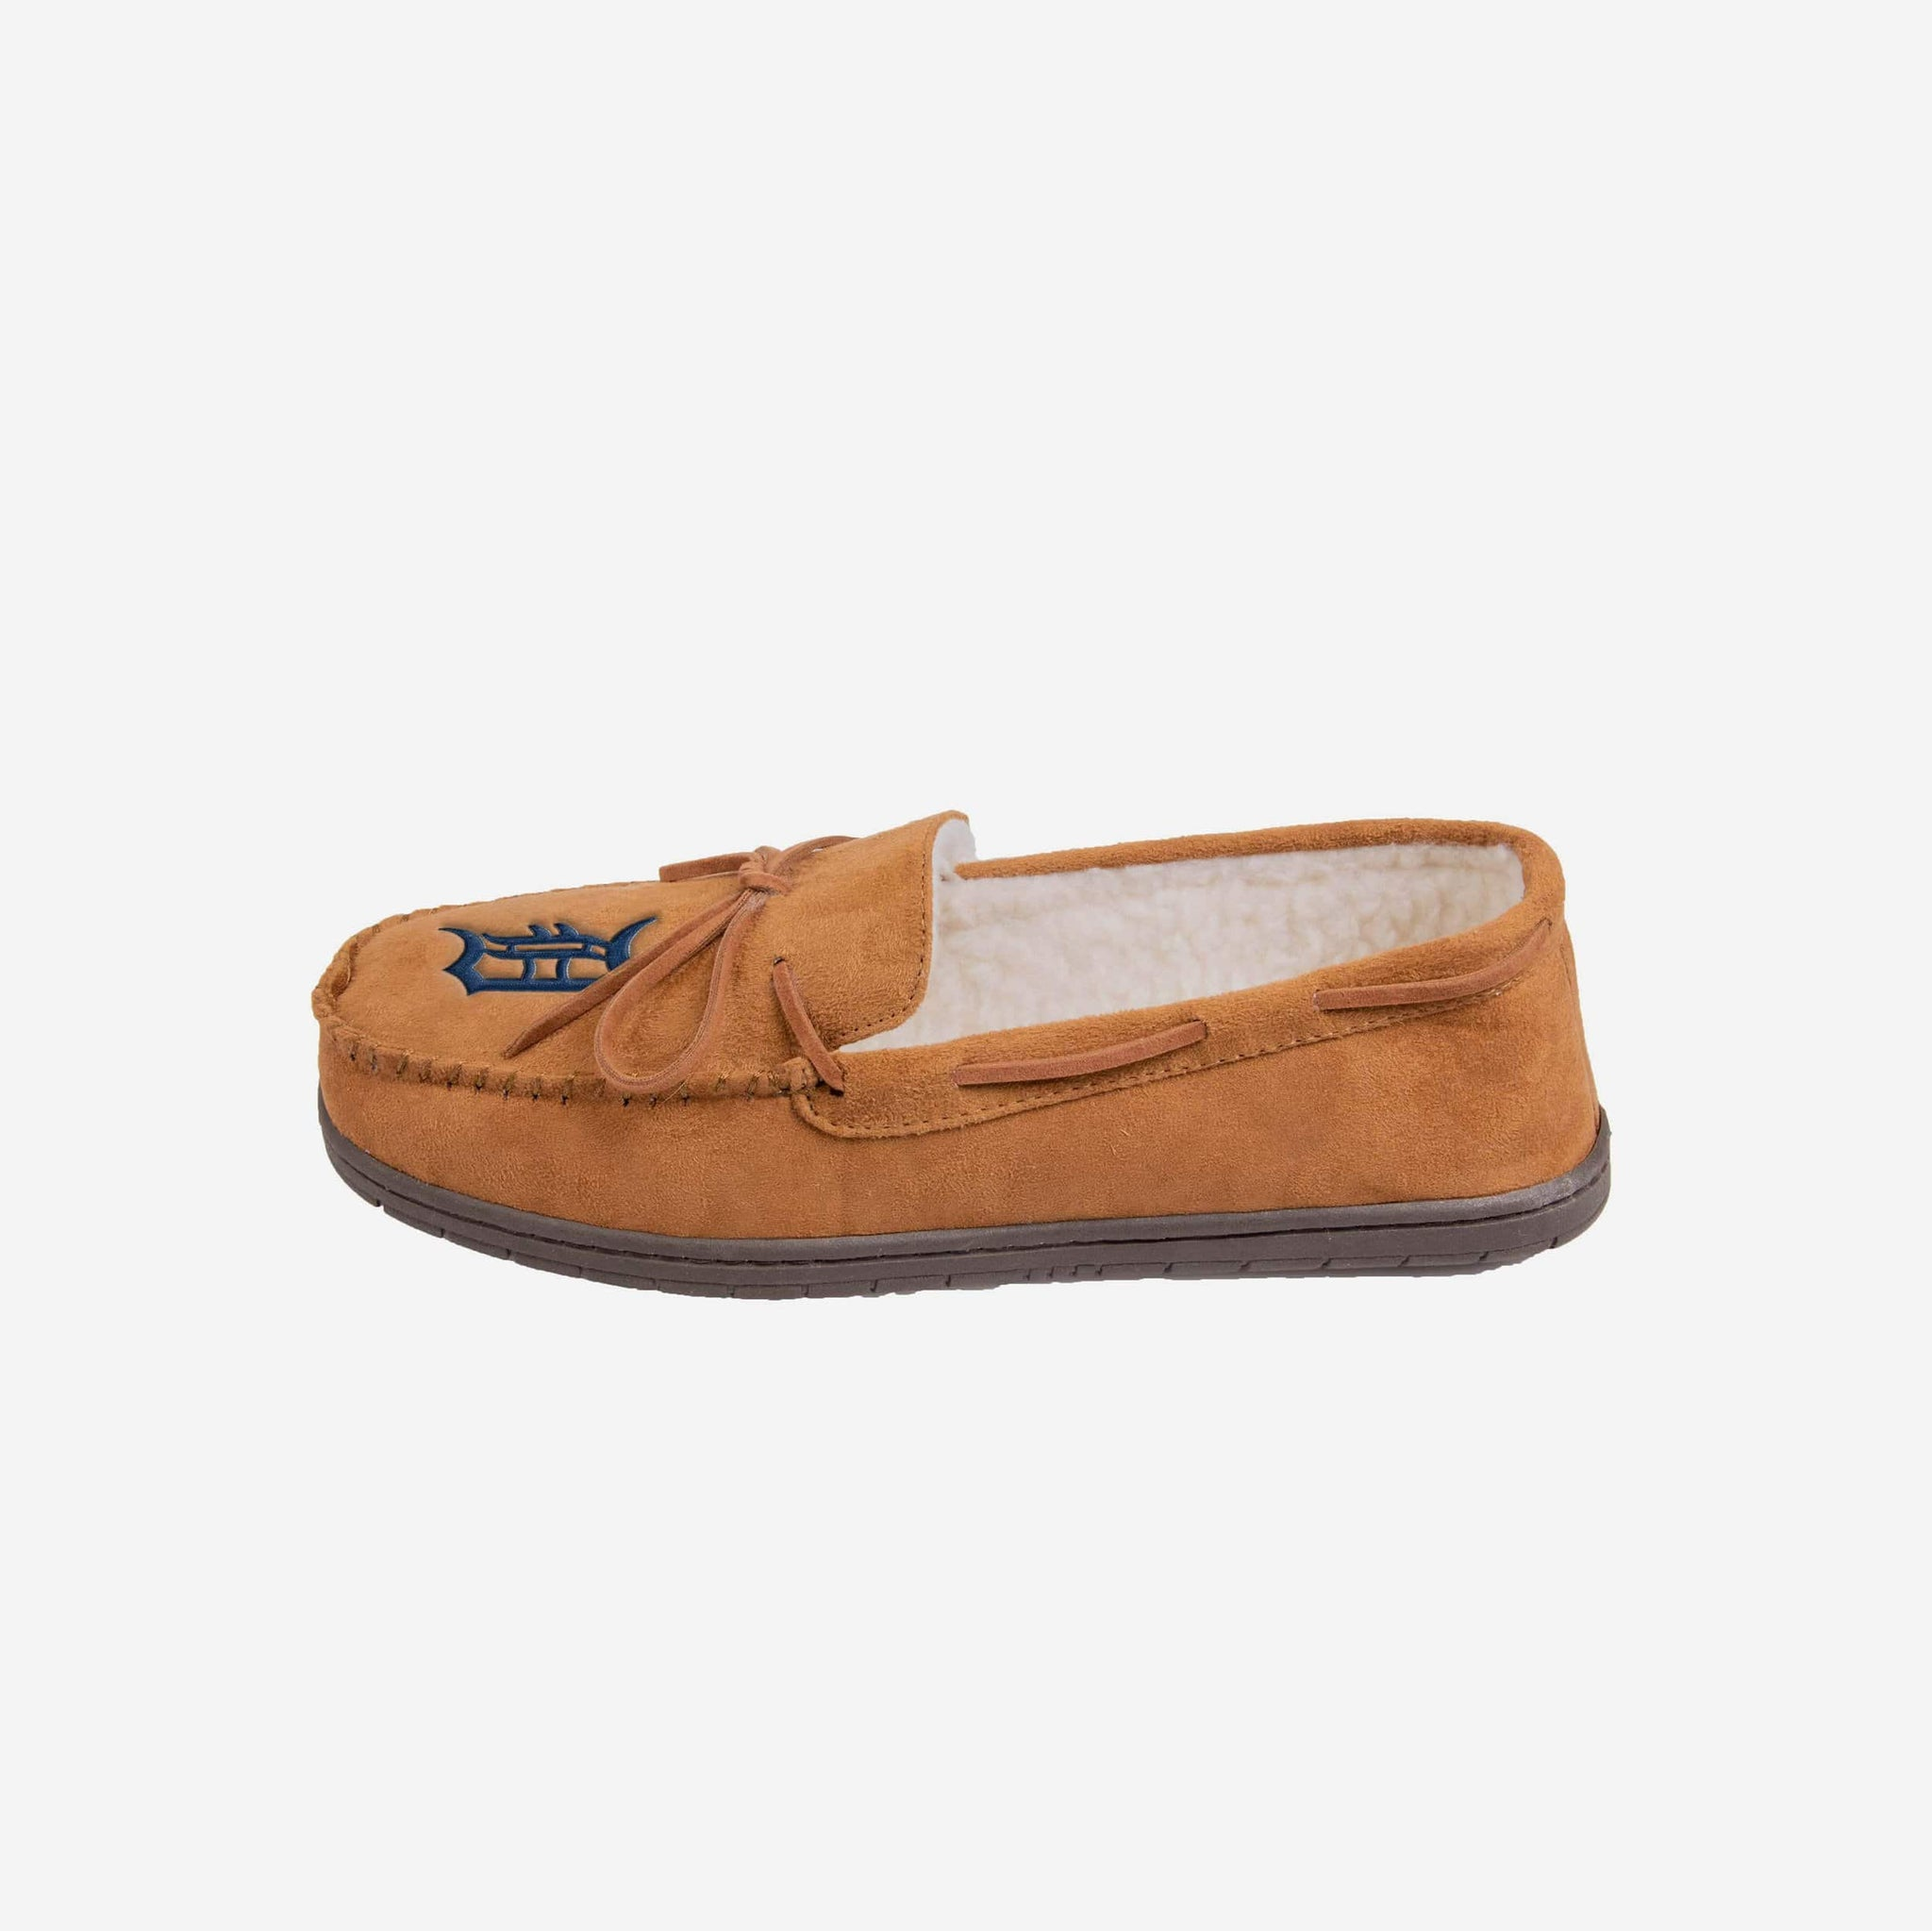 Detroit Tigers Moccasin Slipper FOCO - FOCO.com